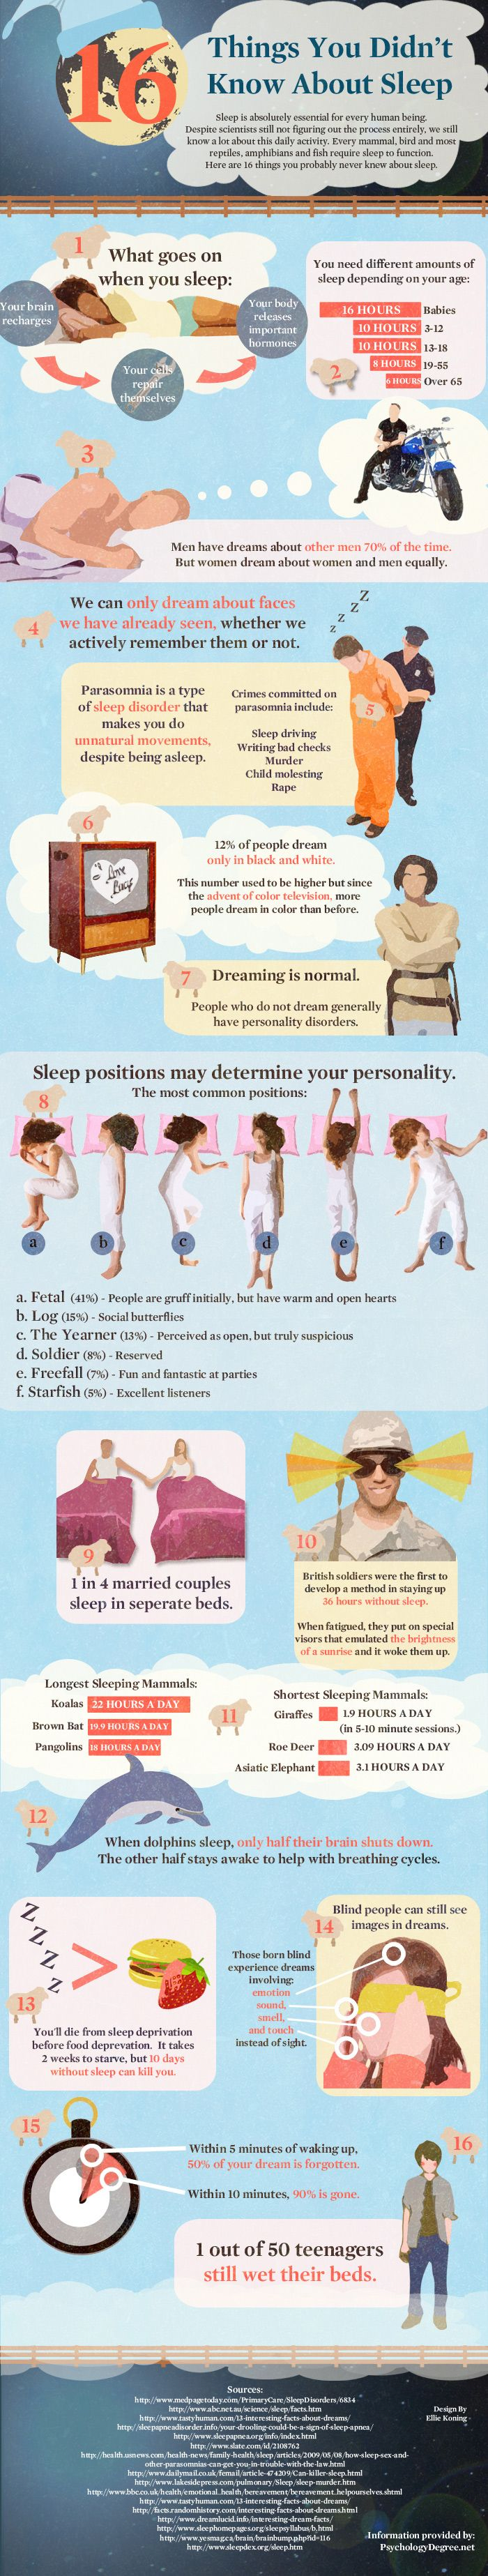 16 Facts About Sleep: Fit, Ideas, Life, Fun Facts, Sleep Facts, 16 Things, 16 Facts, Random Facts, Sleep Infographic